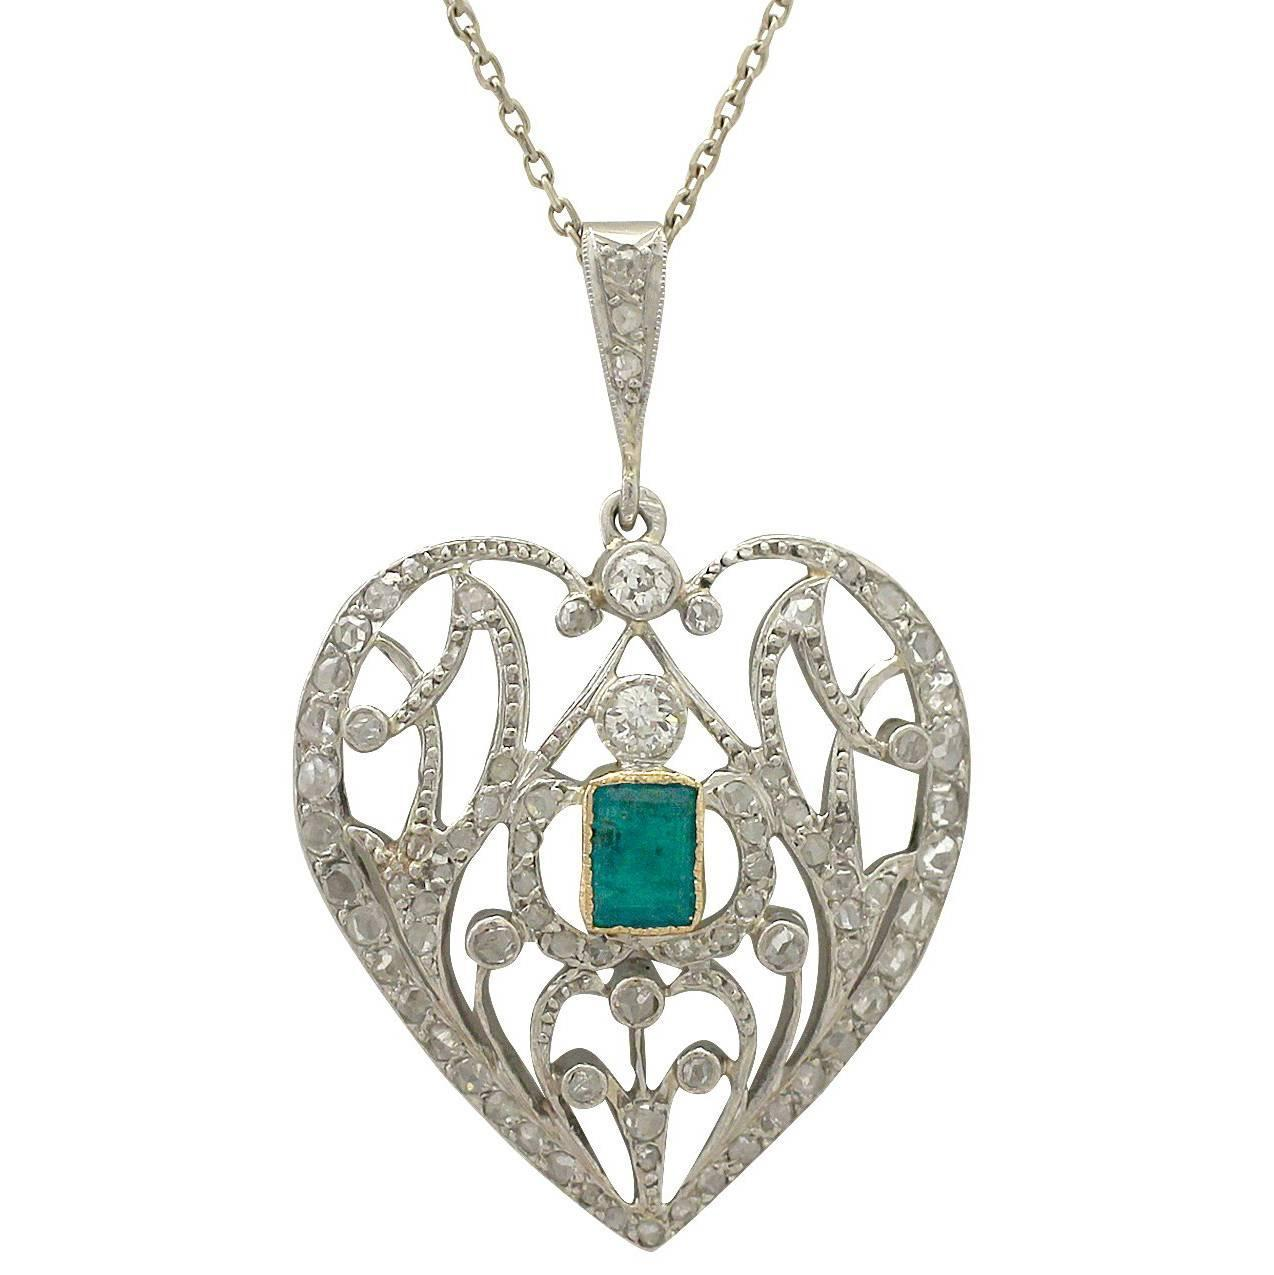 Antique 1890s 033 ct emerald and 035 ct diamond 9 k white gold antique 1890s 033 ct emerald and 035 ct diamond 9 k white gold heart pendant for sale at 1stdibs aloadofball